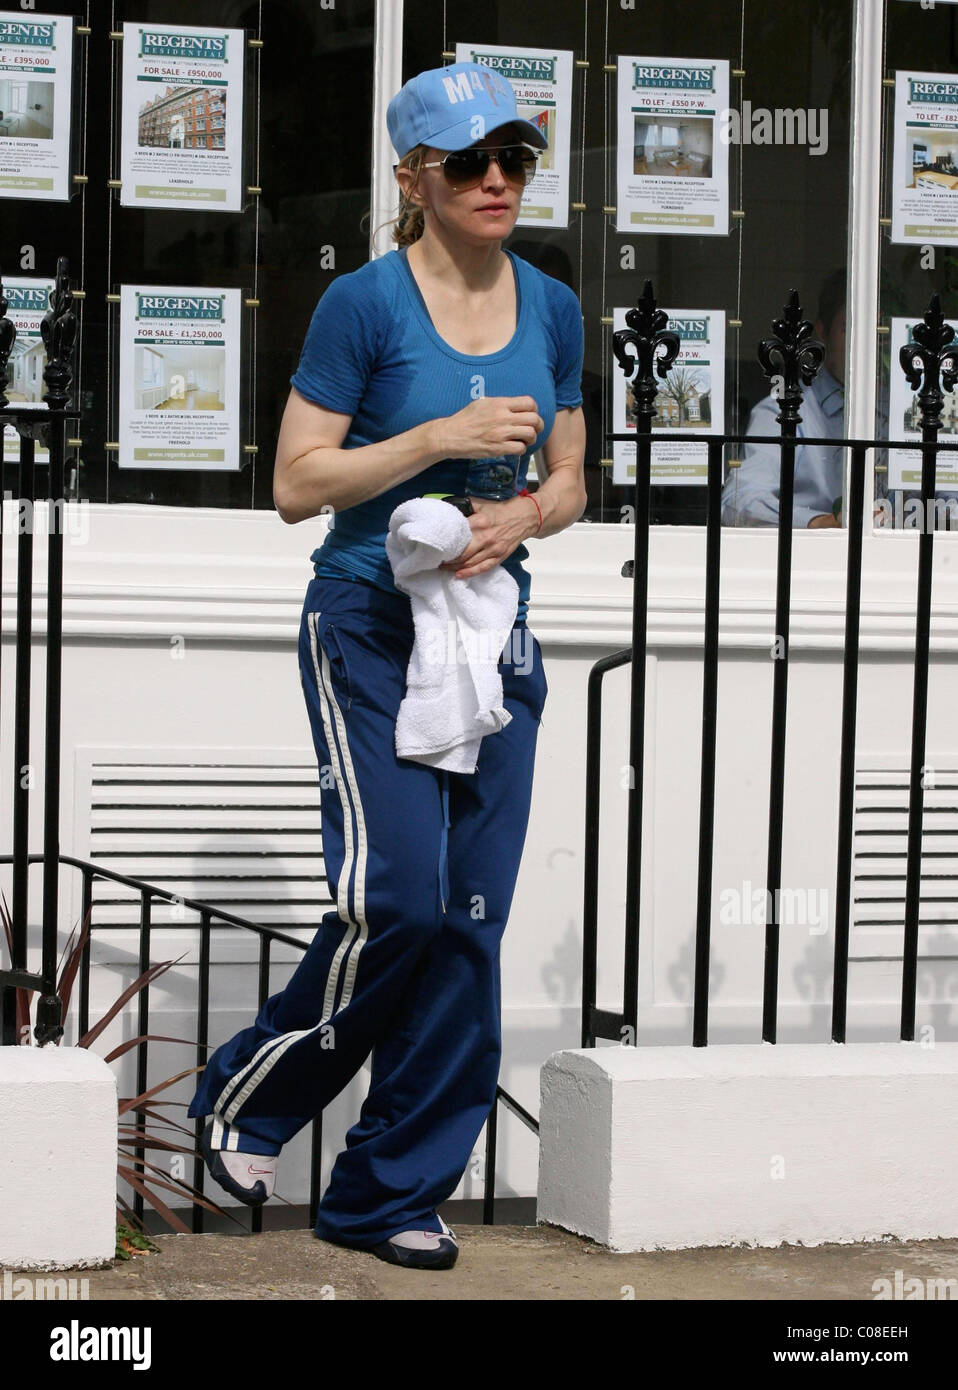 Madonna Leaving The Gym After What Looks Like An Intense Workout At Her Pilates Class Judging By Sweat Patches Around